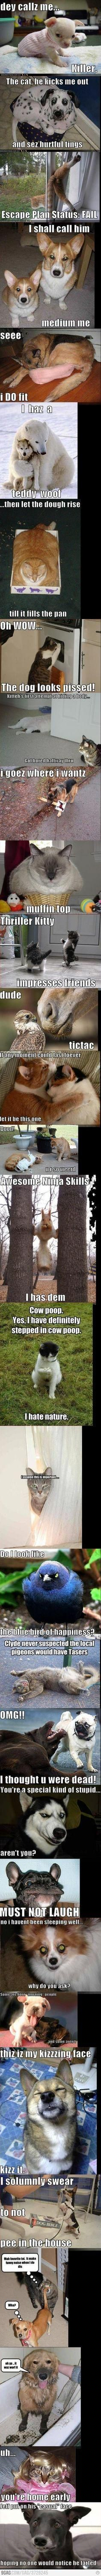 So many funny animal photos, I d¥¥¥,m on't think I can take it!